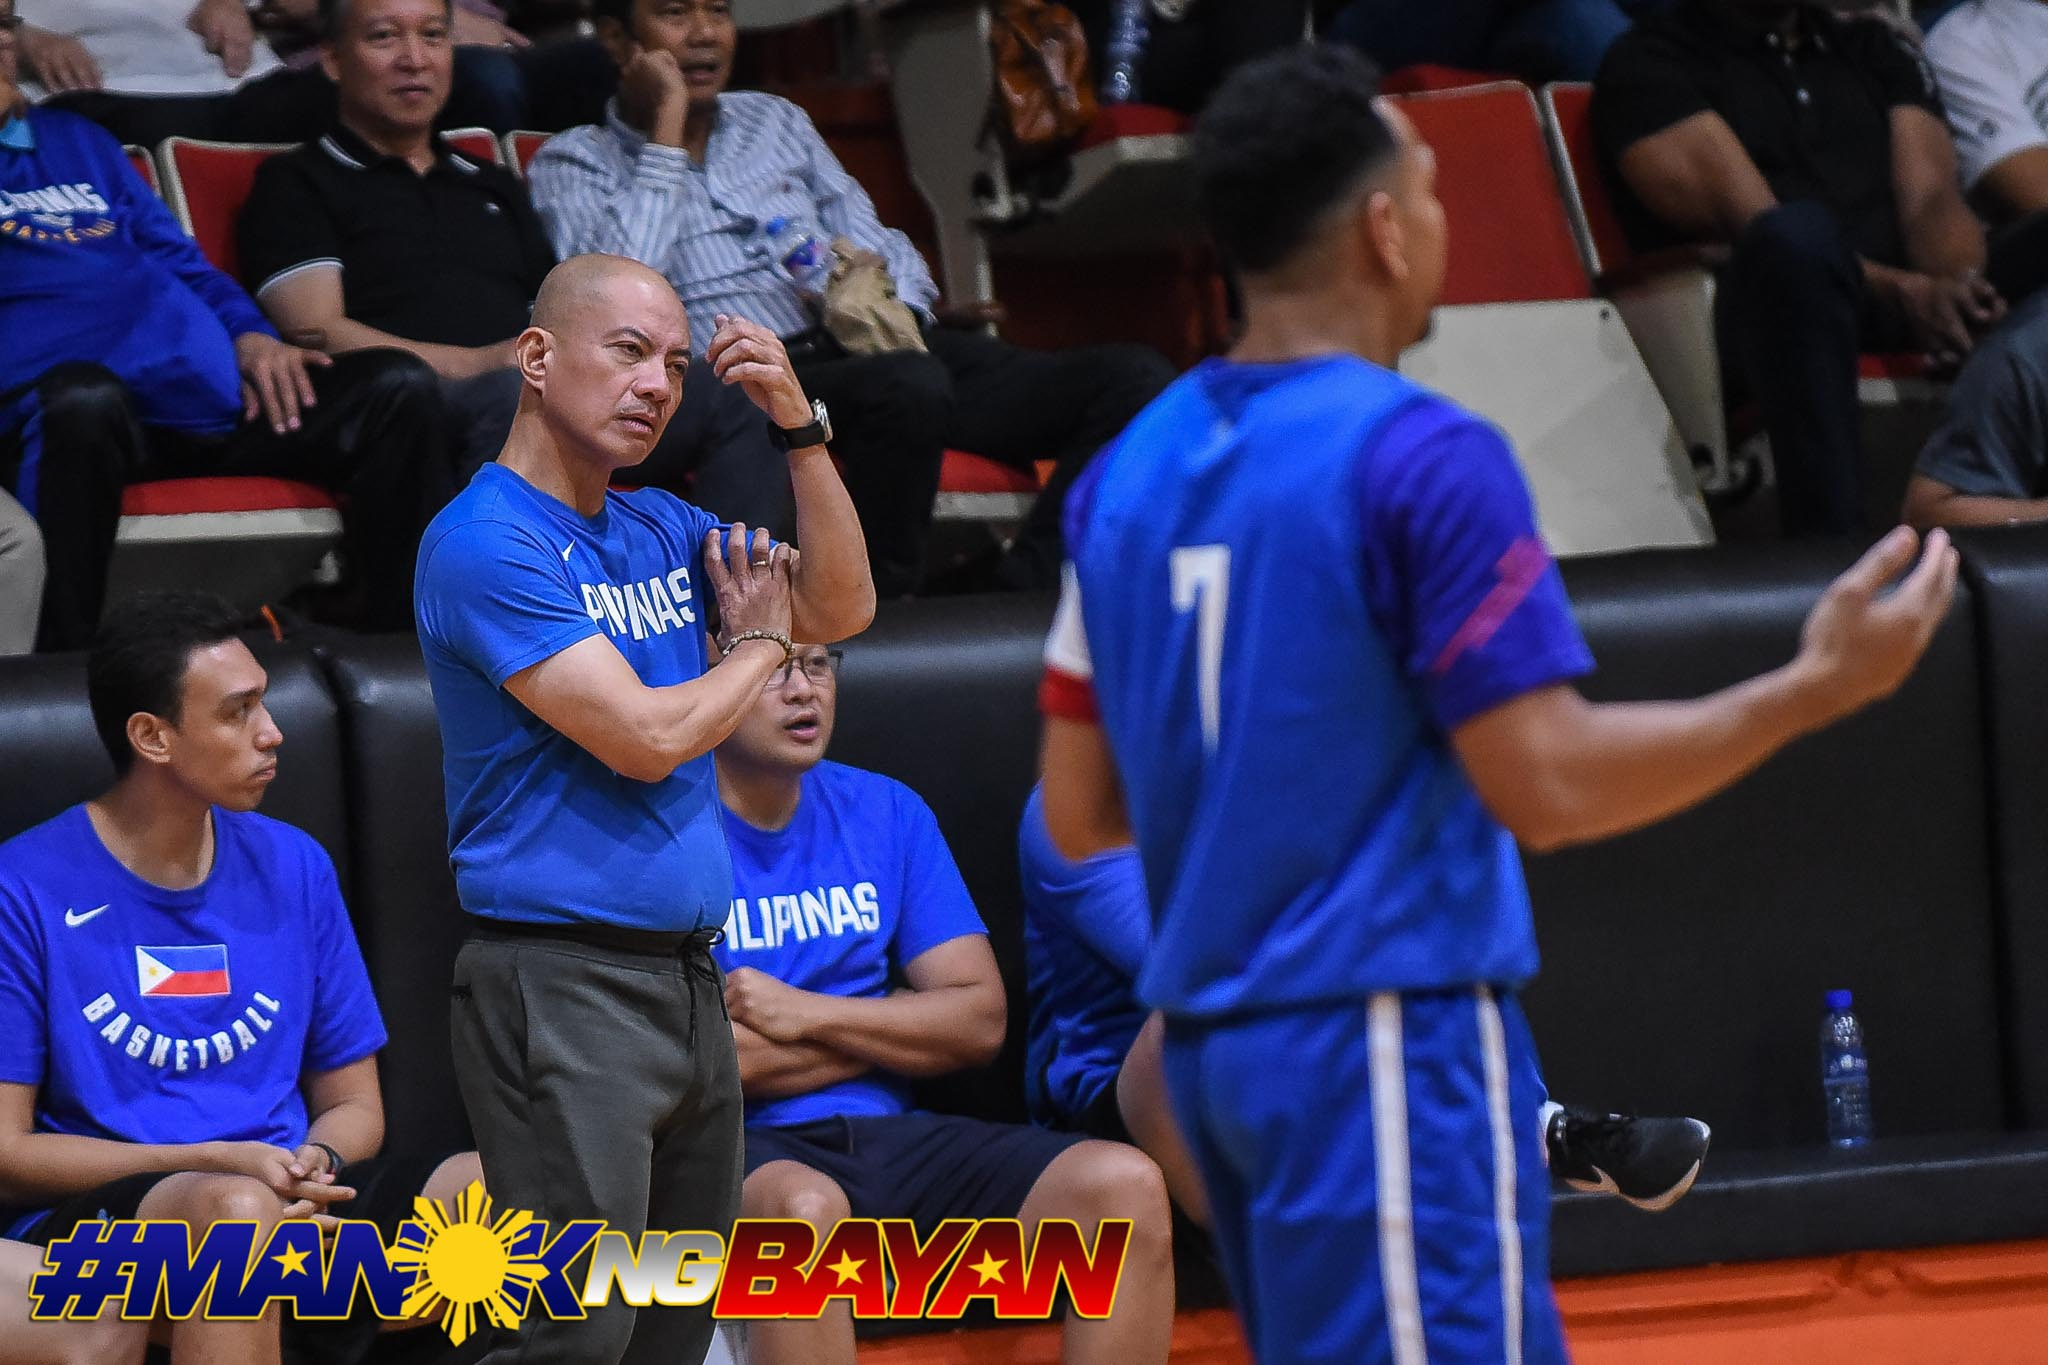 Tiebreaker Times Twice-a-week practices no longer enough for Gilas, laments Yeng Guiao 2019 FIBA World Cup Qualifiers Basketball Gilas Pilipinas News  Yeng Guiao Gilas Pilipinas Men 2019 FIBA World Cup